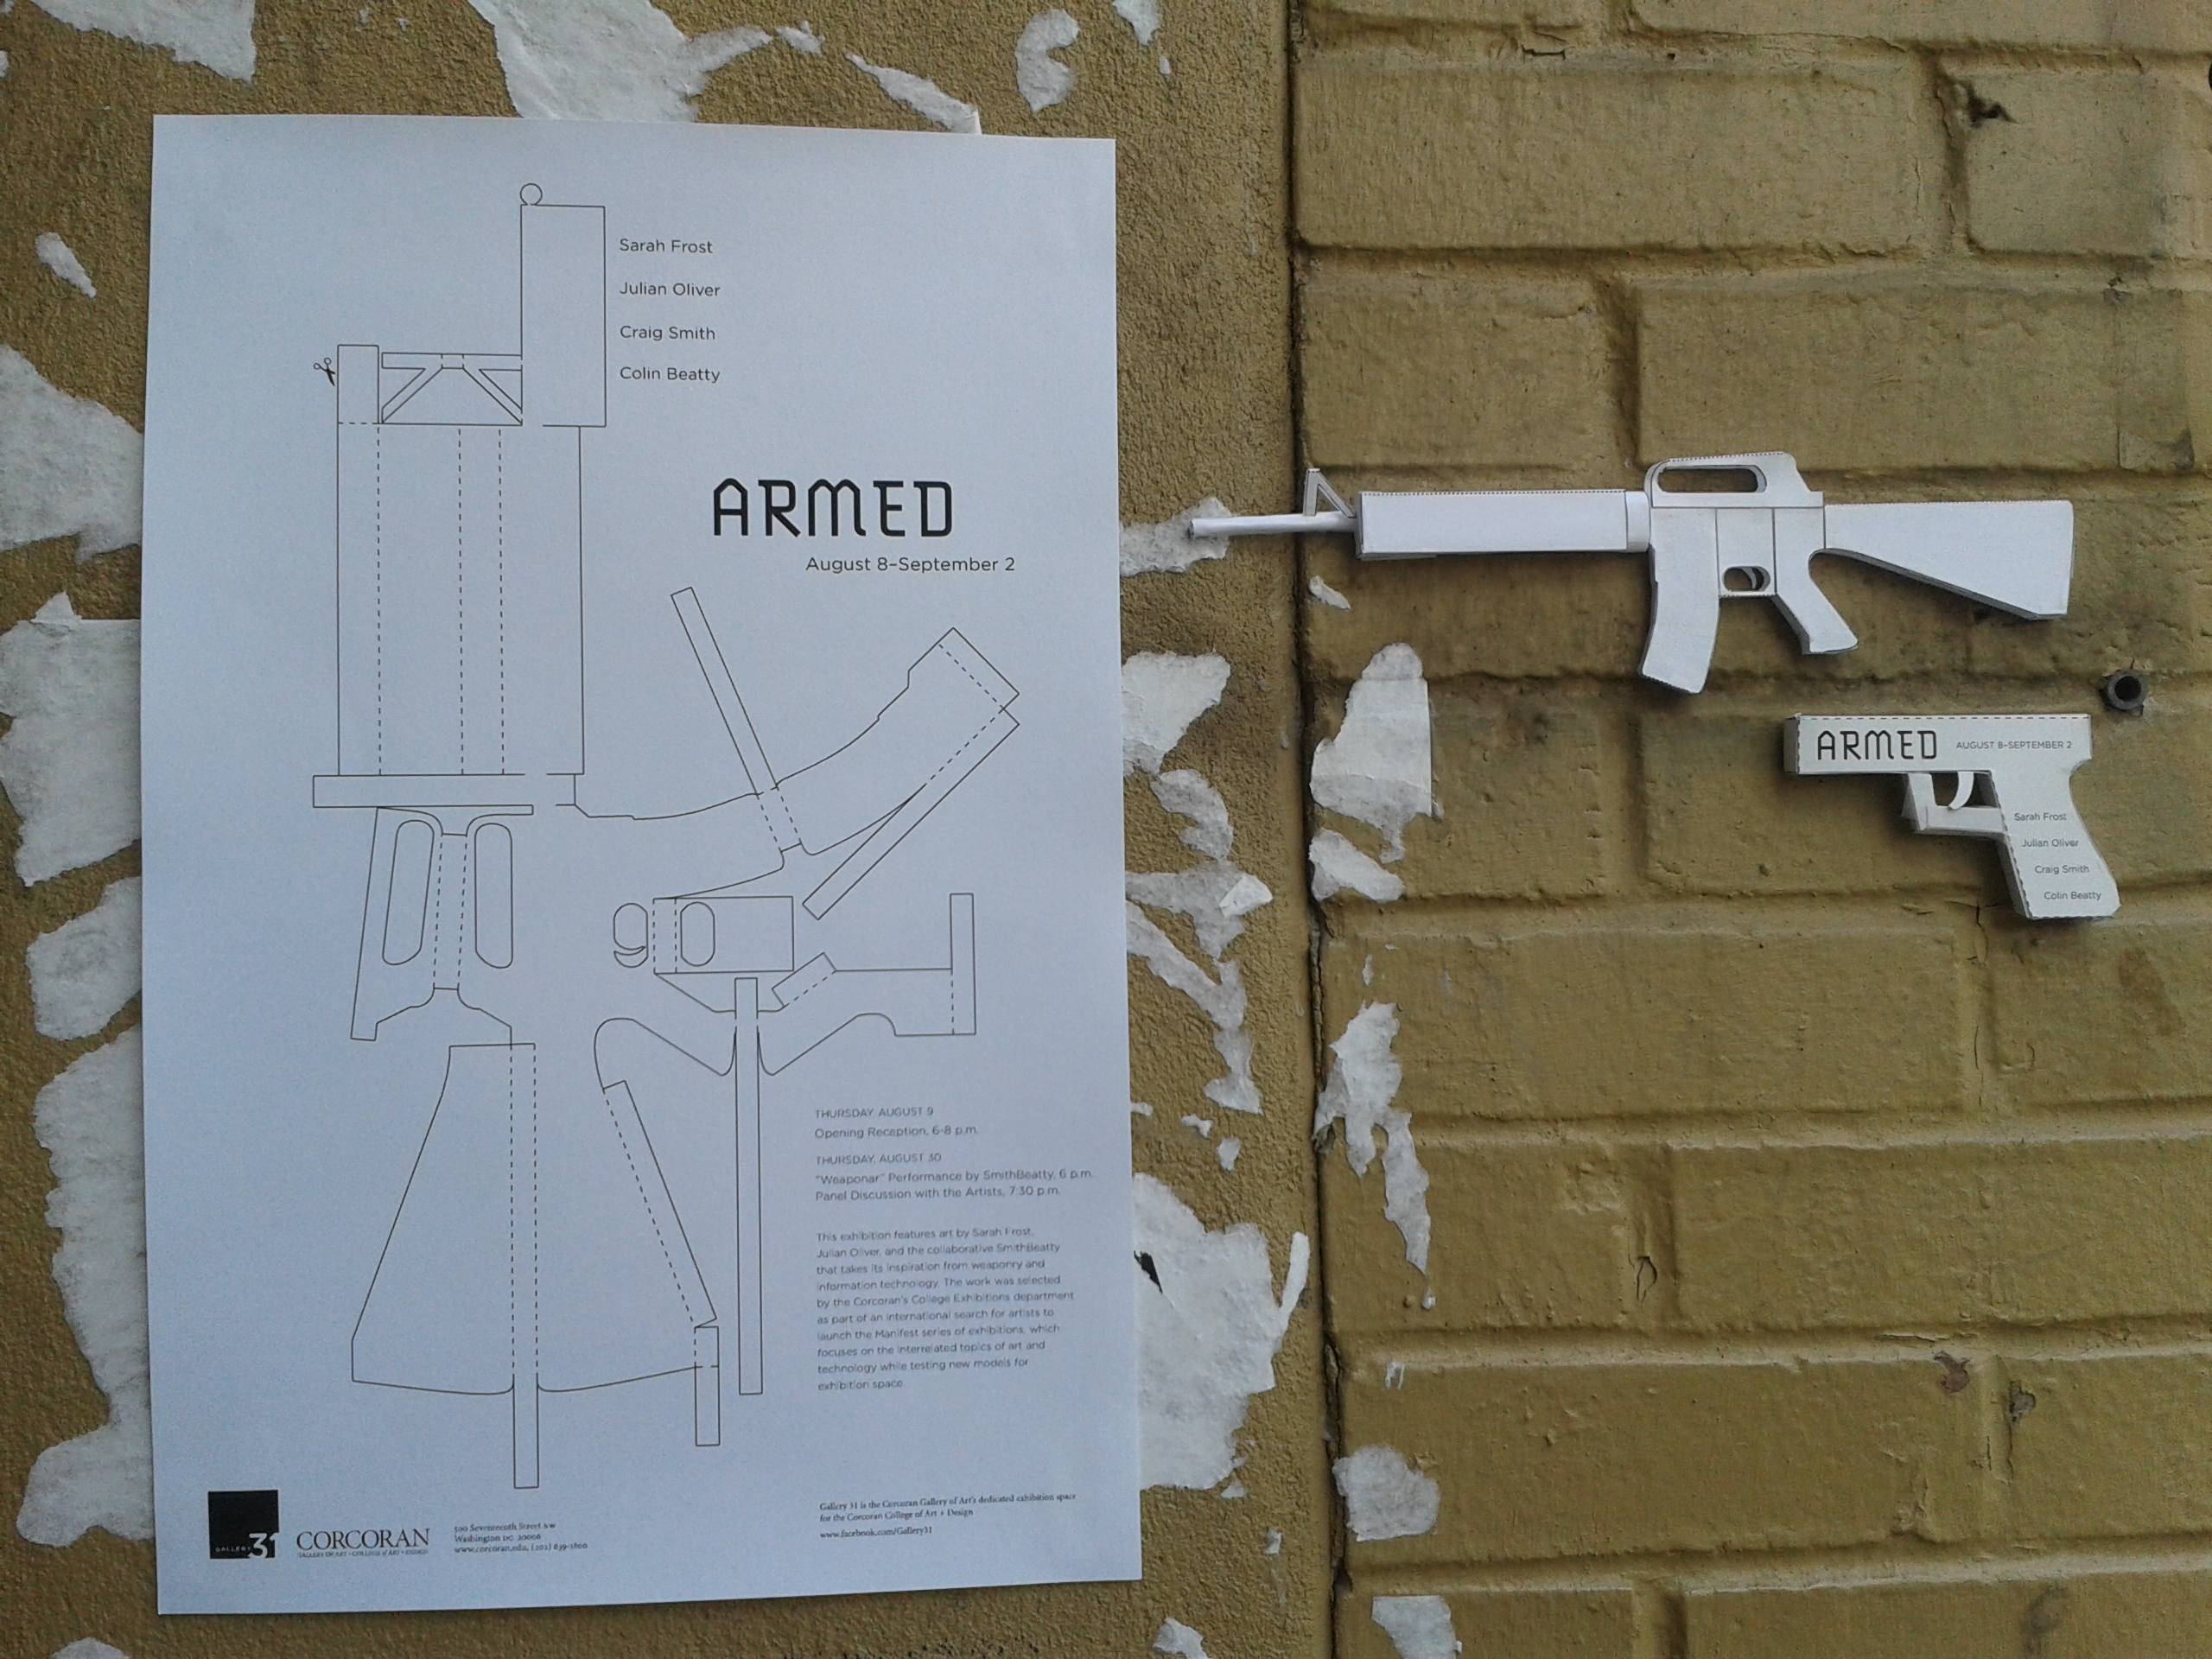 Some promotional material for the show. Manifest Armed.